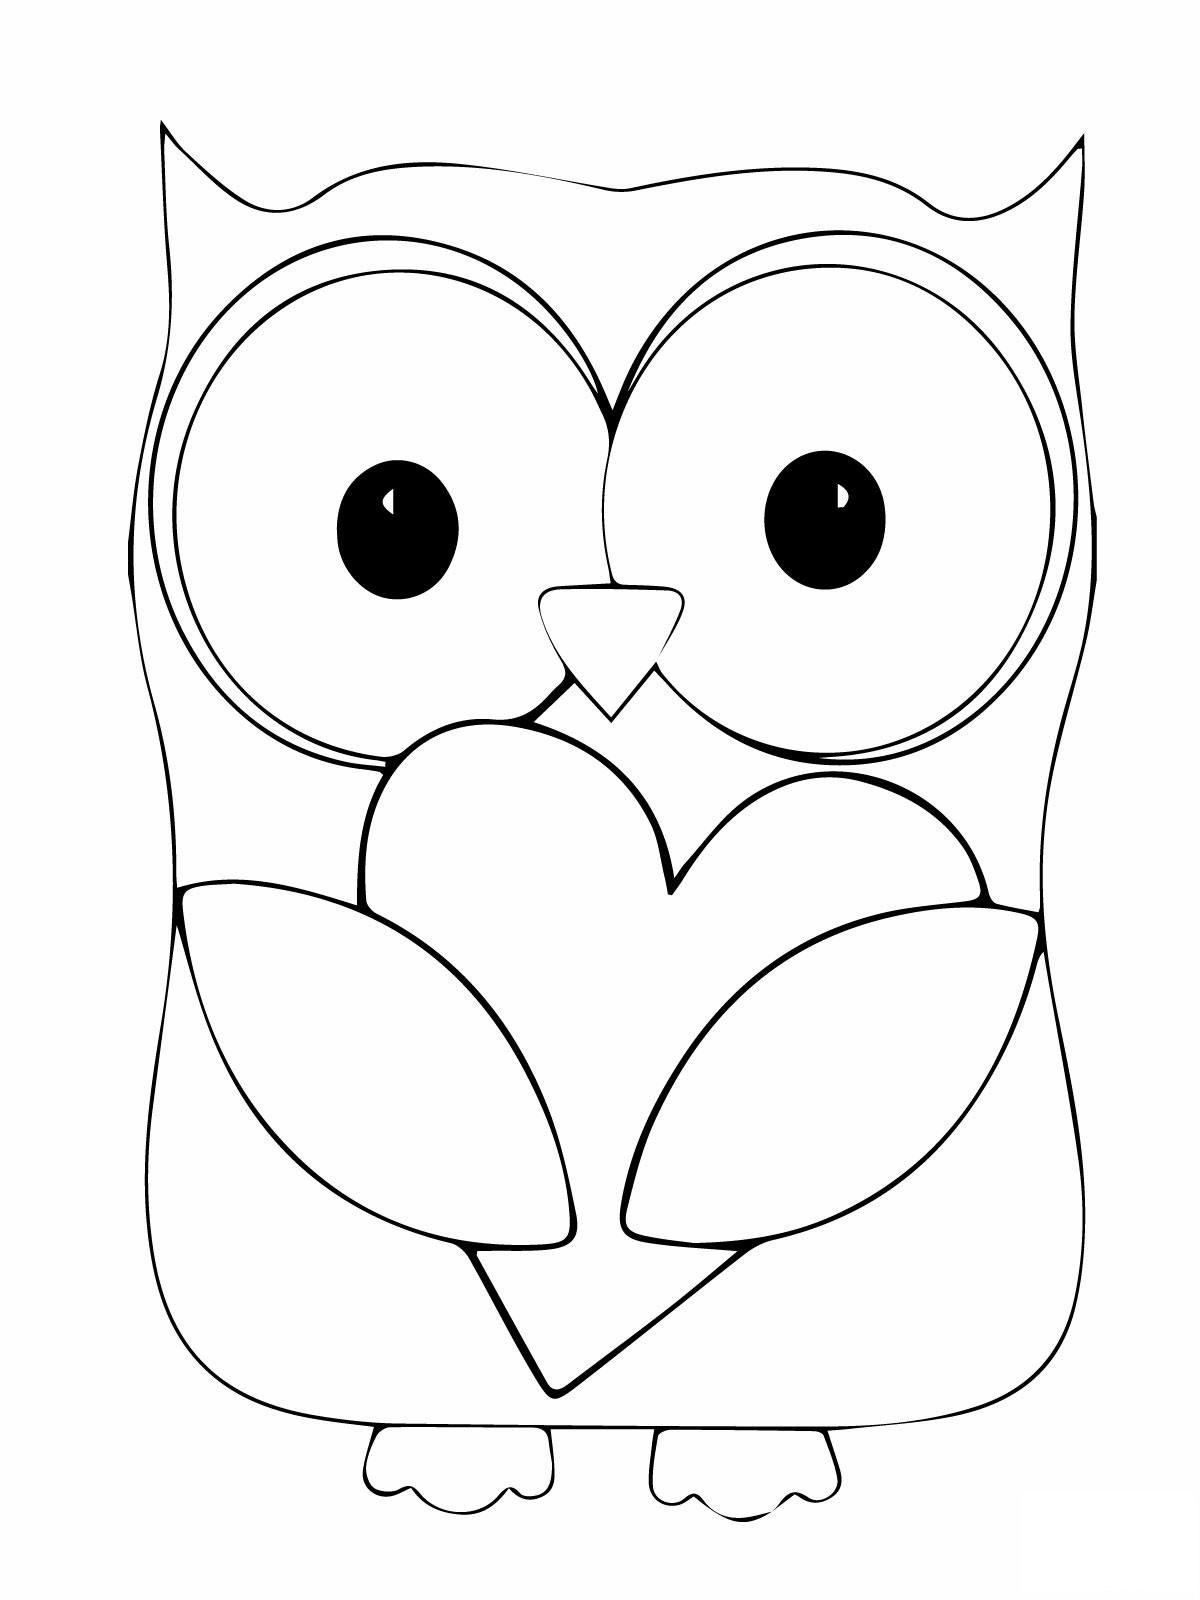 printable pictures of owls baby owls coloring sheet to print printable of pictures owls